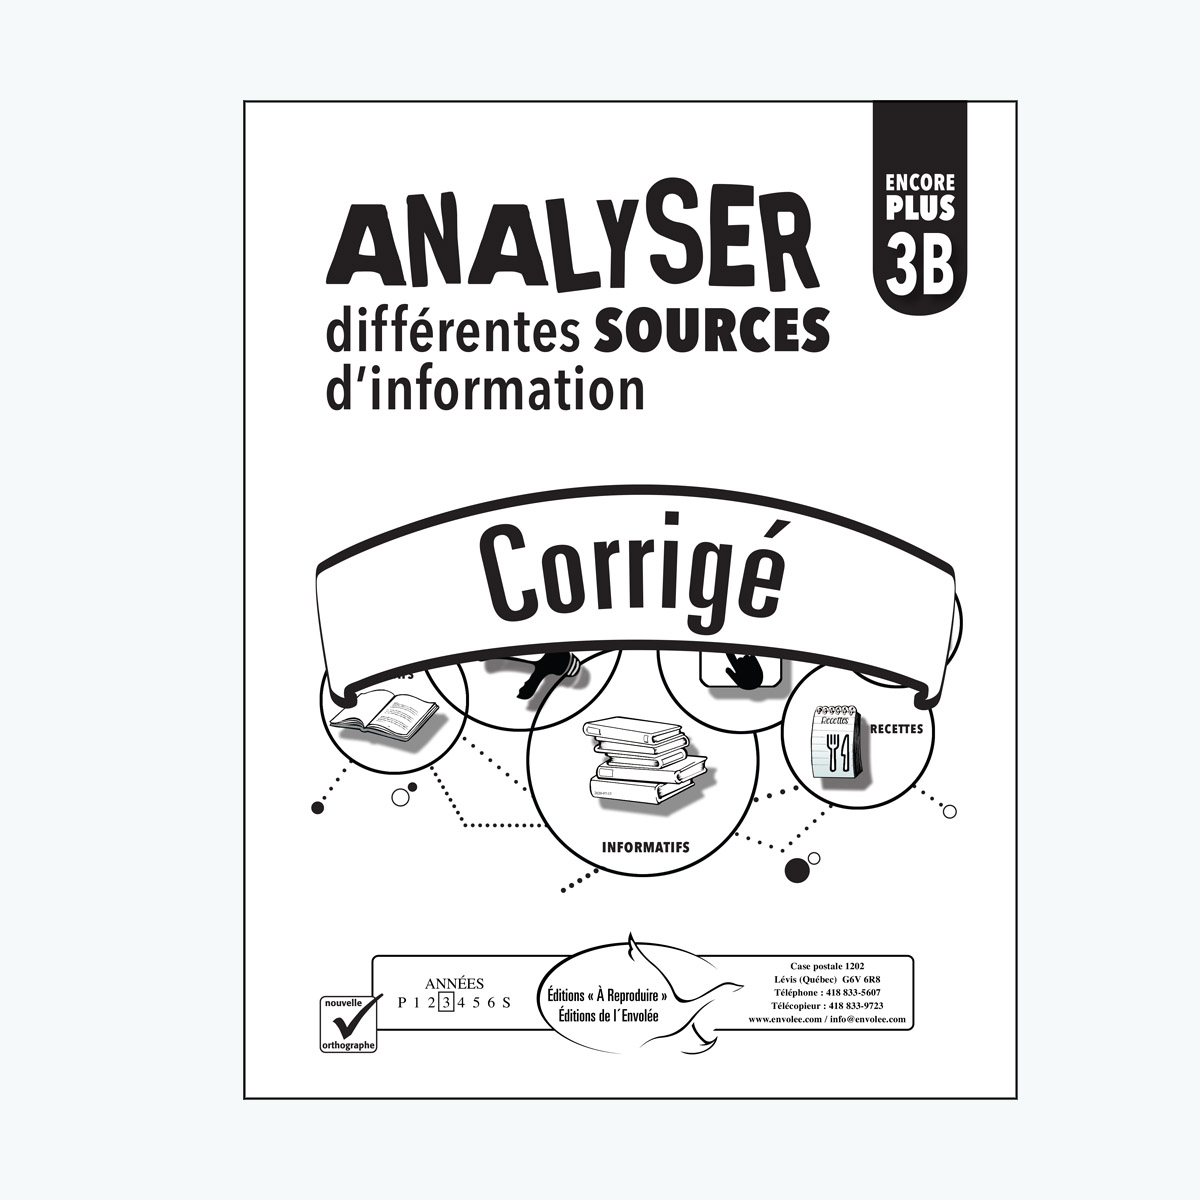 Analyser différentes sources d'information 3B